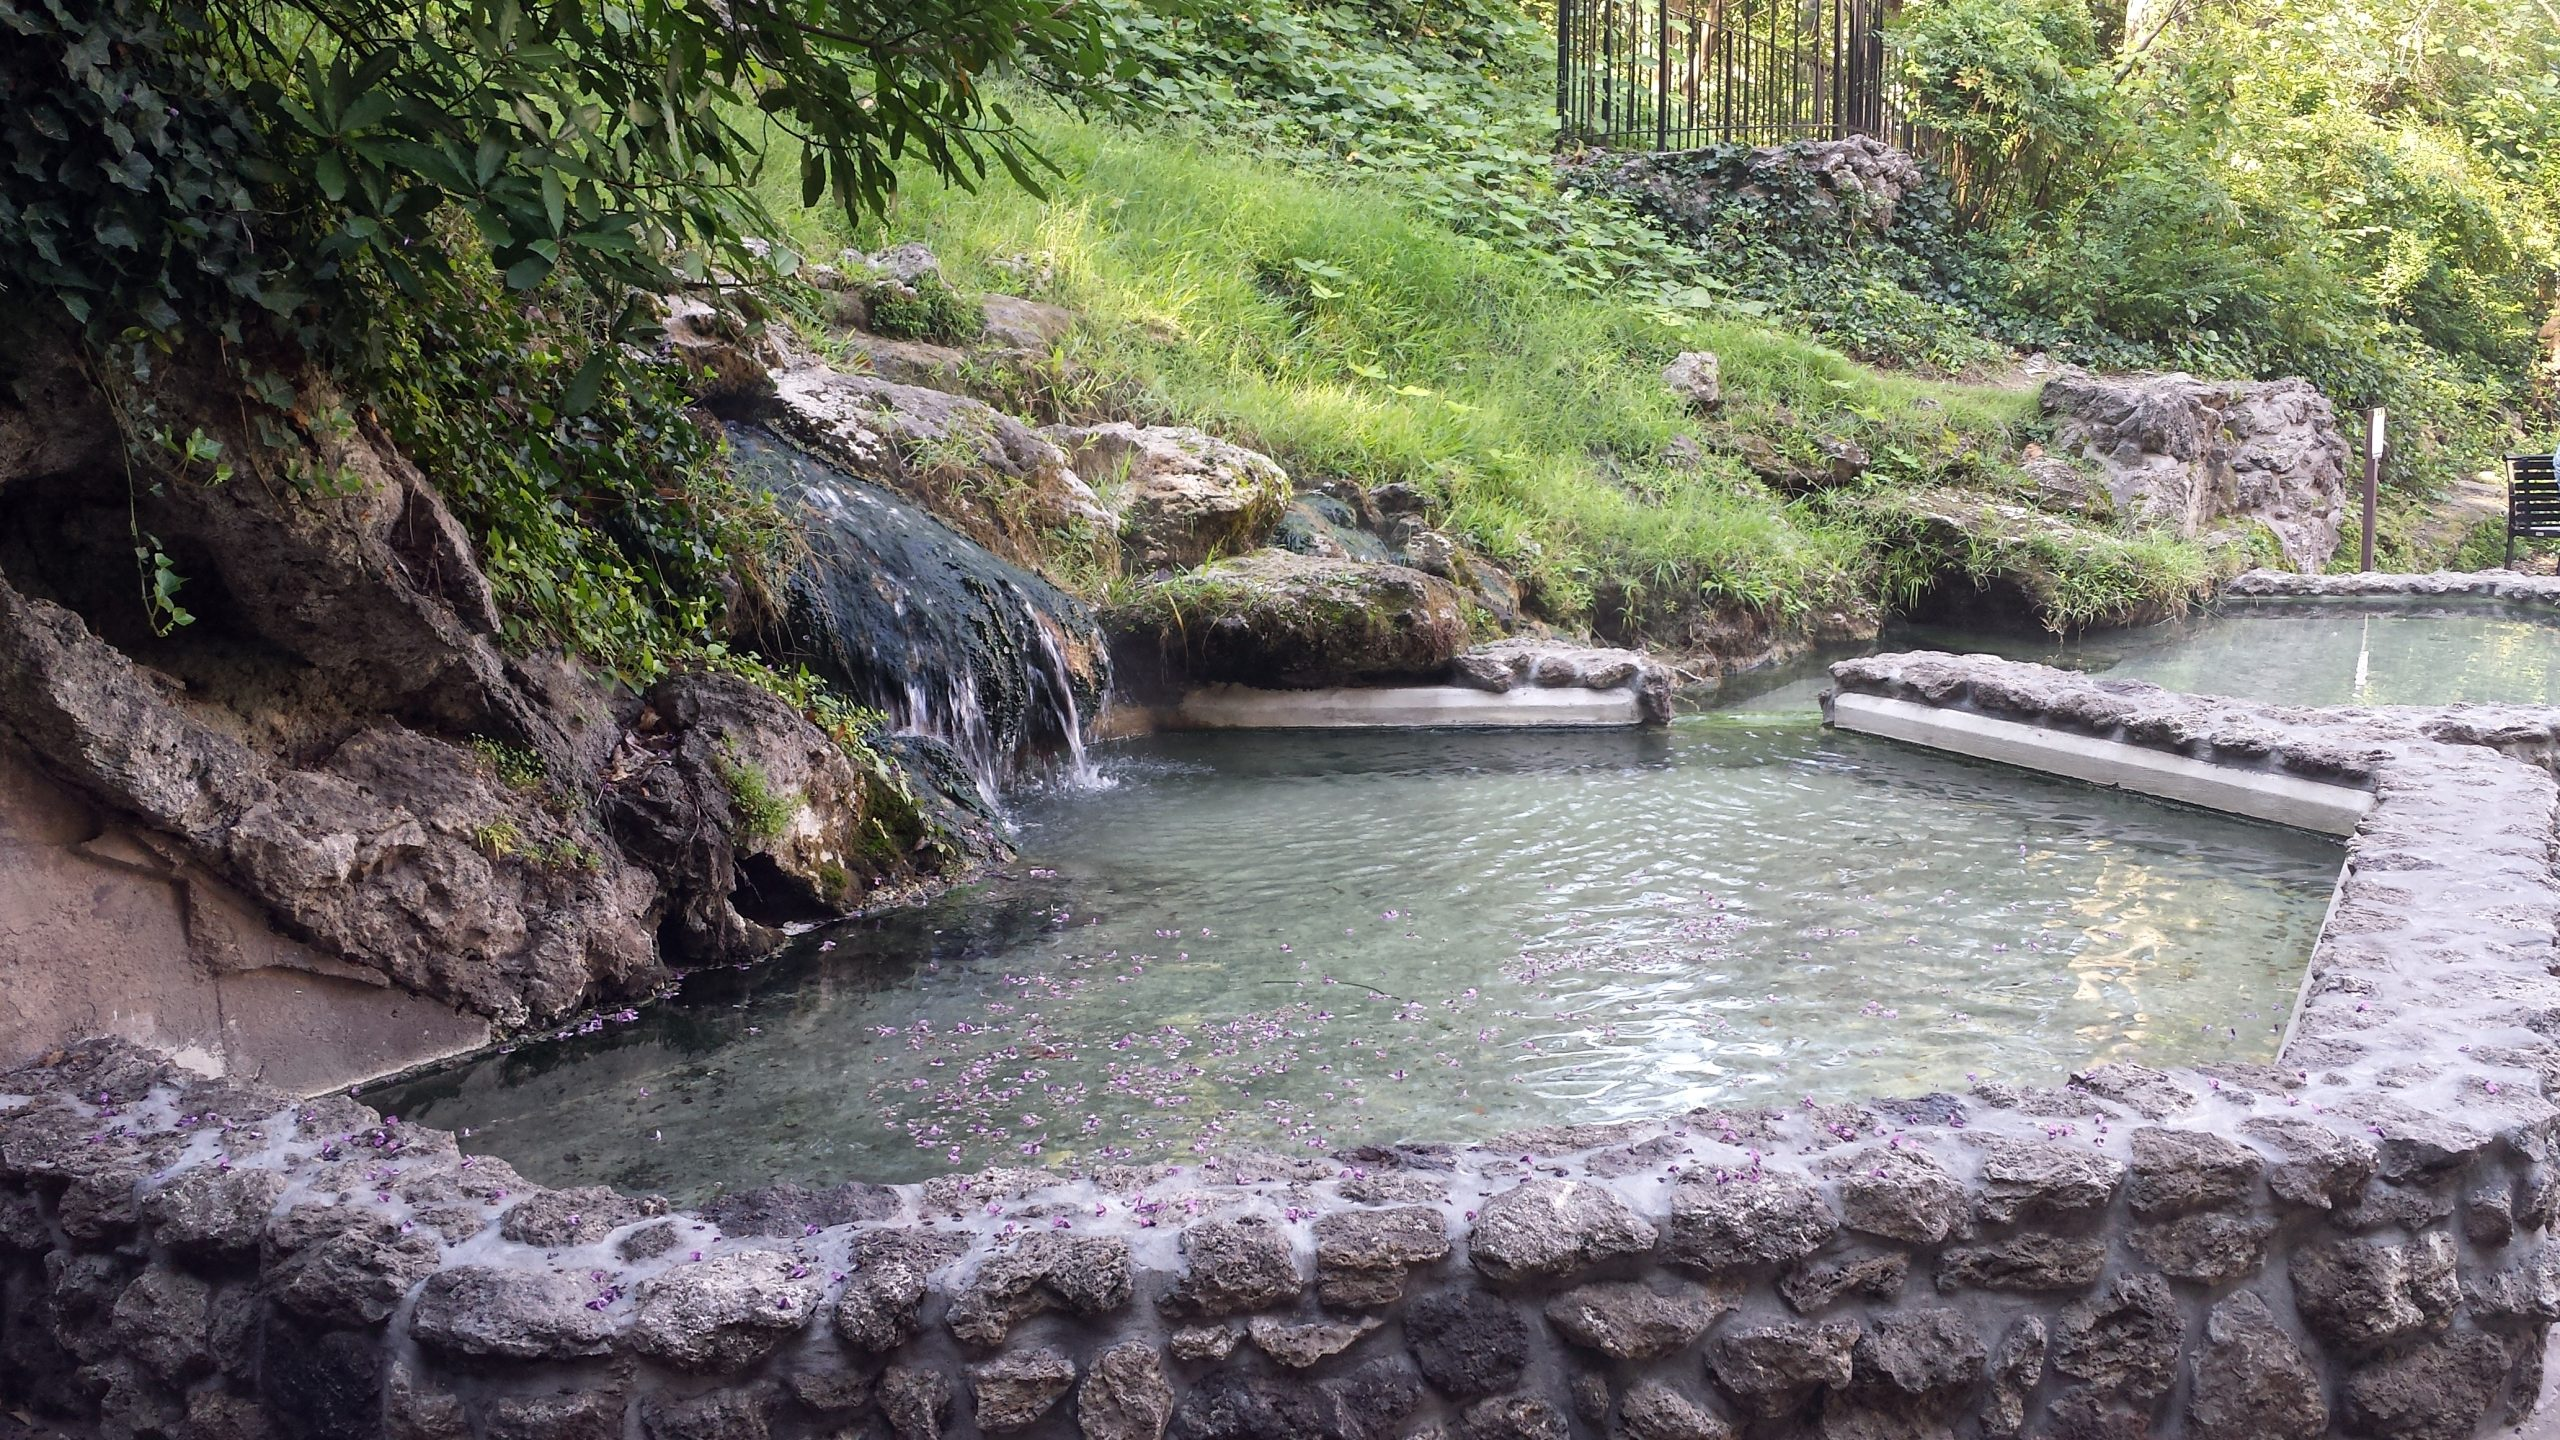 Hot Springs - Don't Miss Out This Beautiful Place In Arkansas